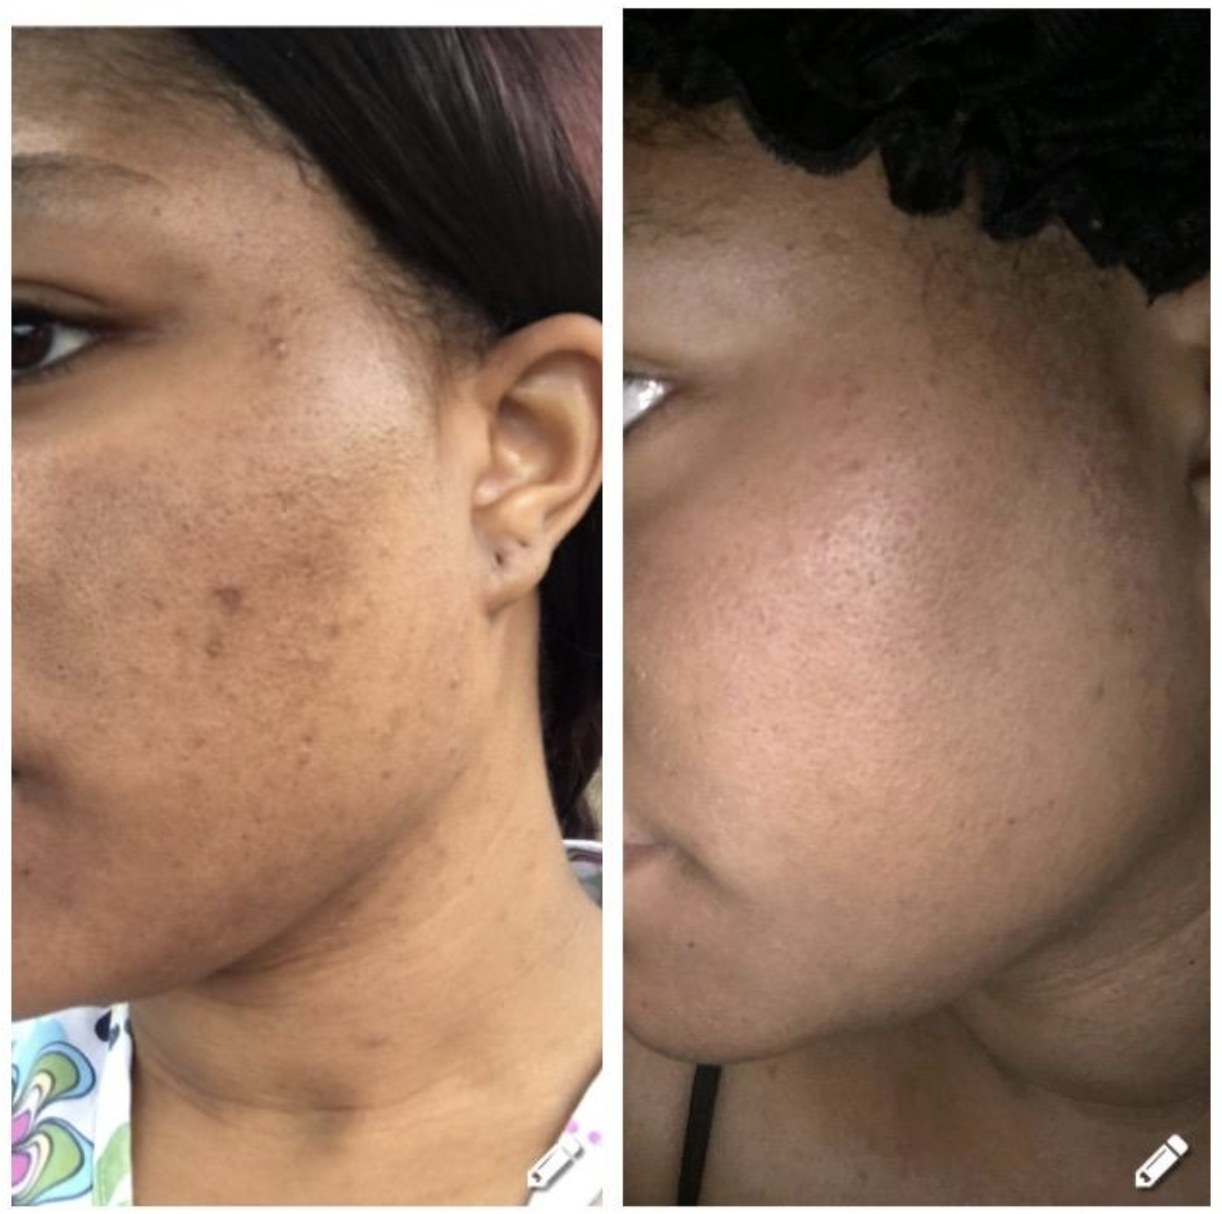 A before and after of a person's cheek